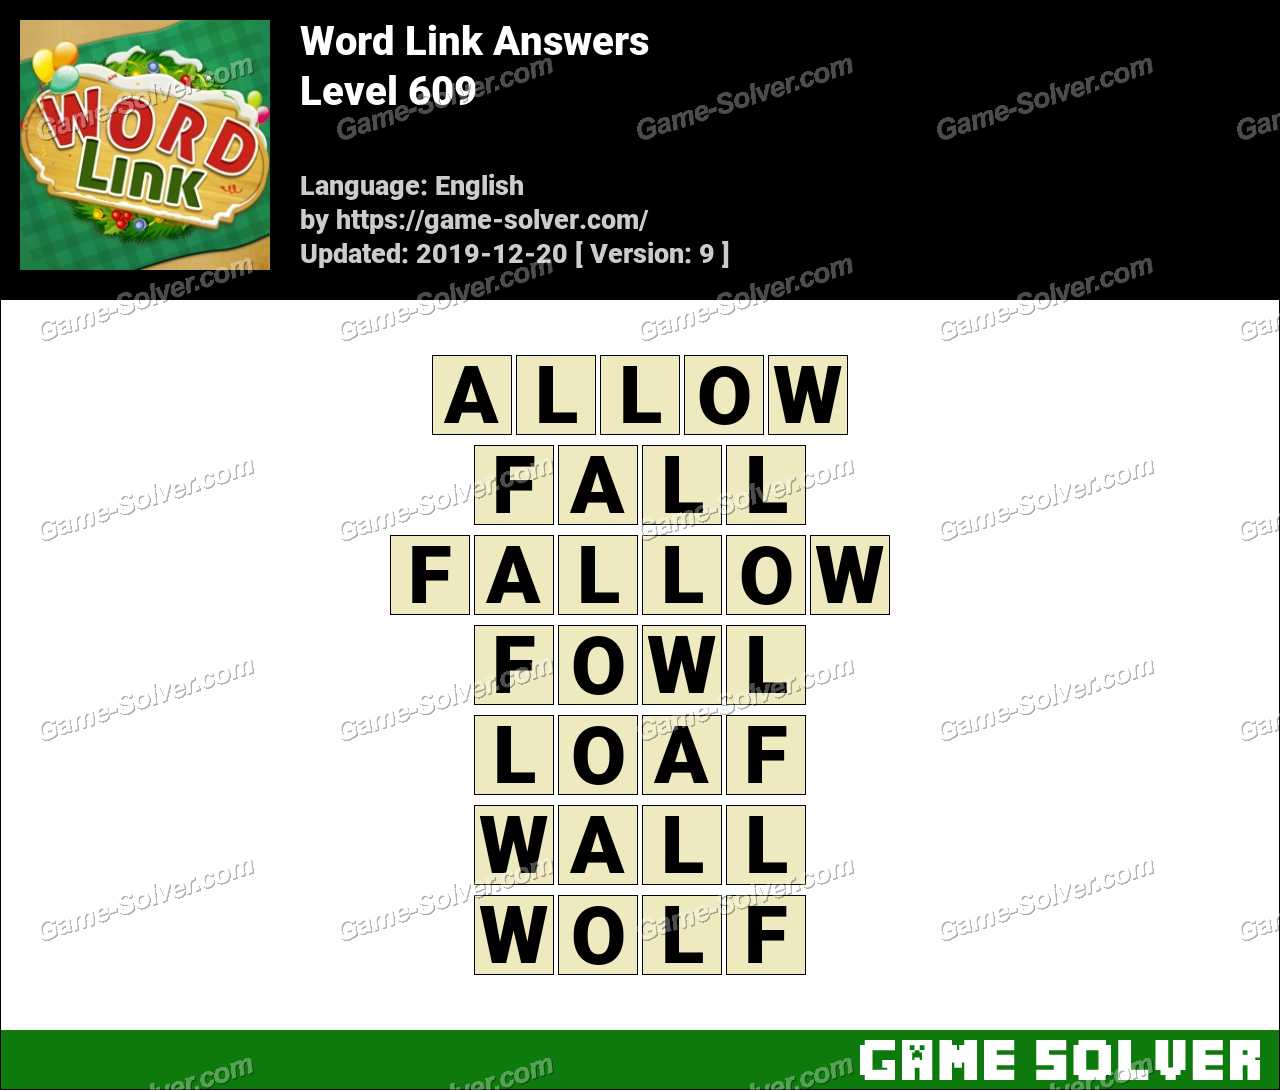 Word Link Level 609 Answers